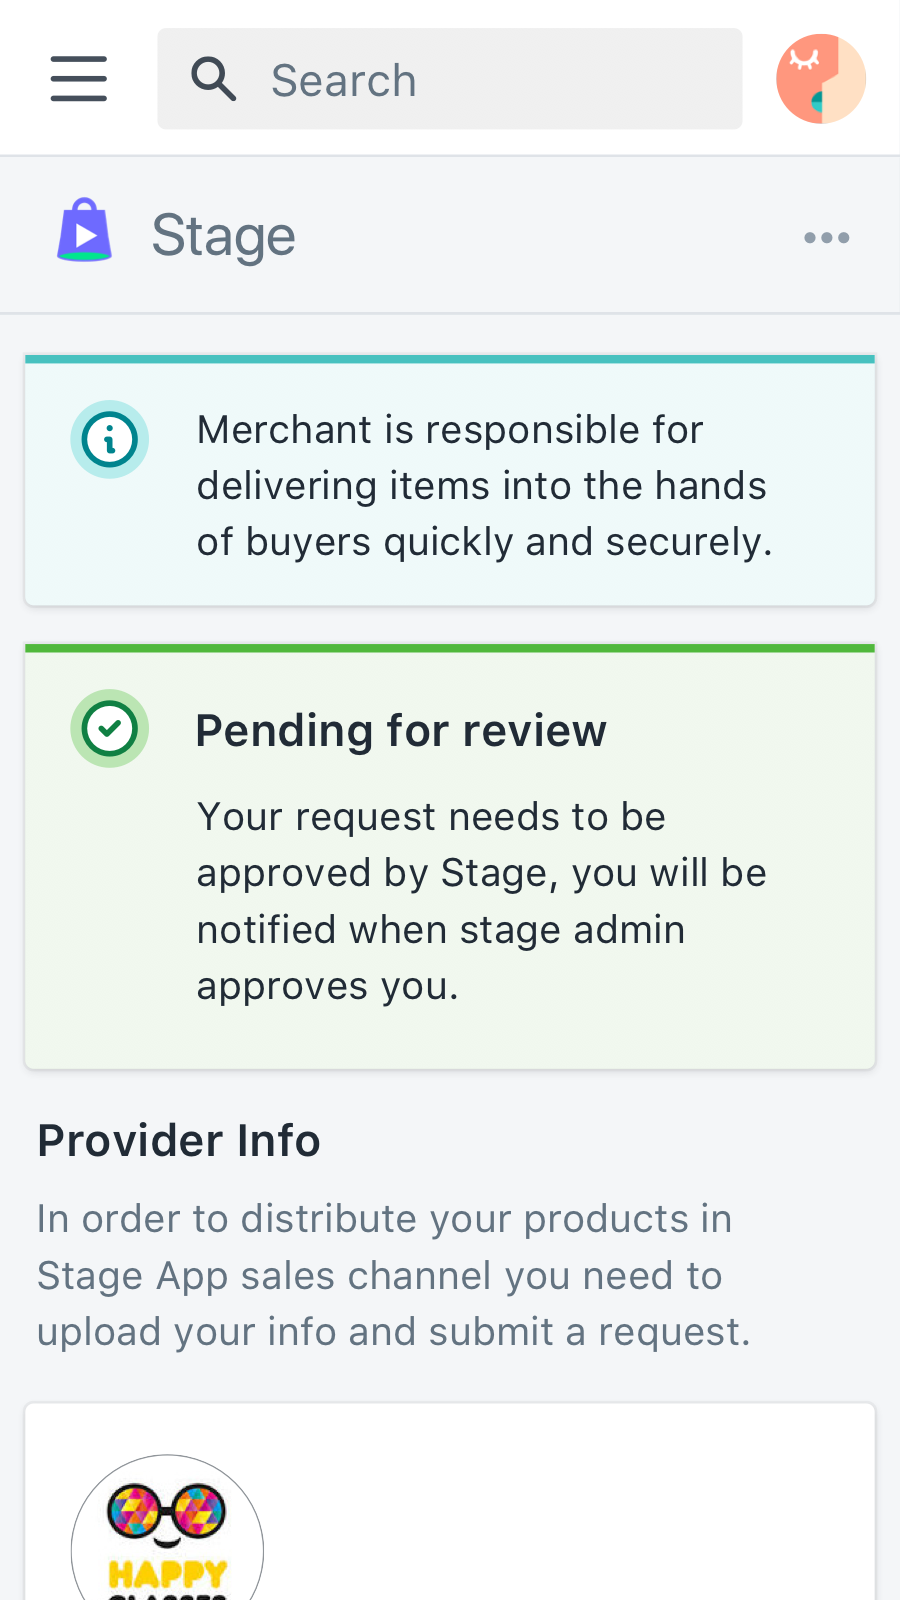 Getting update about your account approval